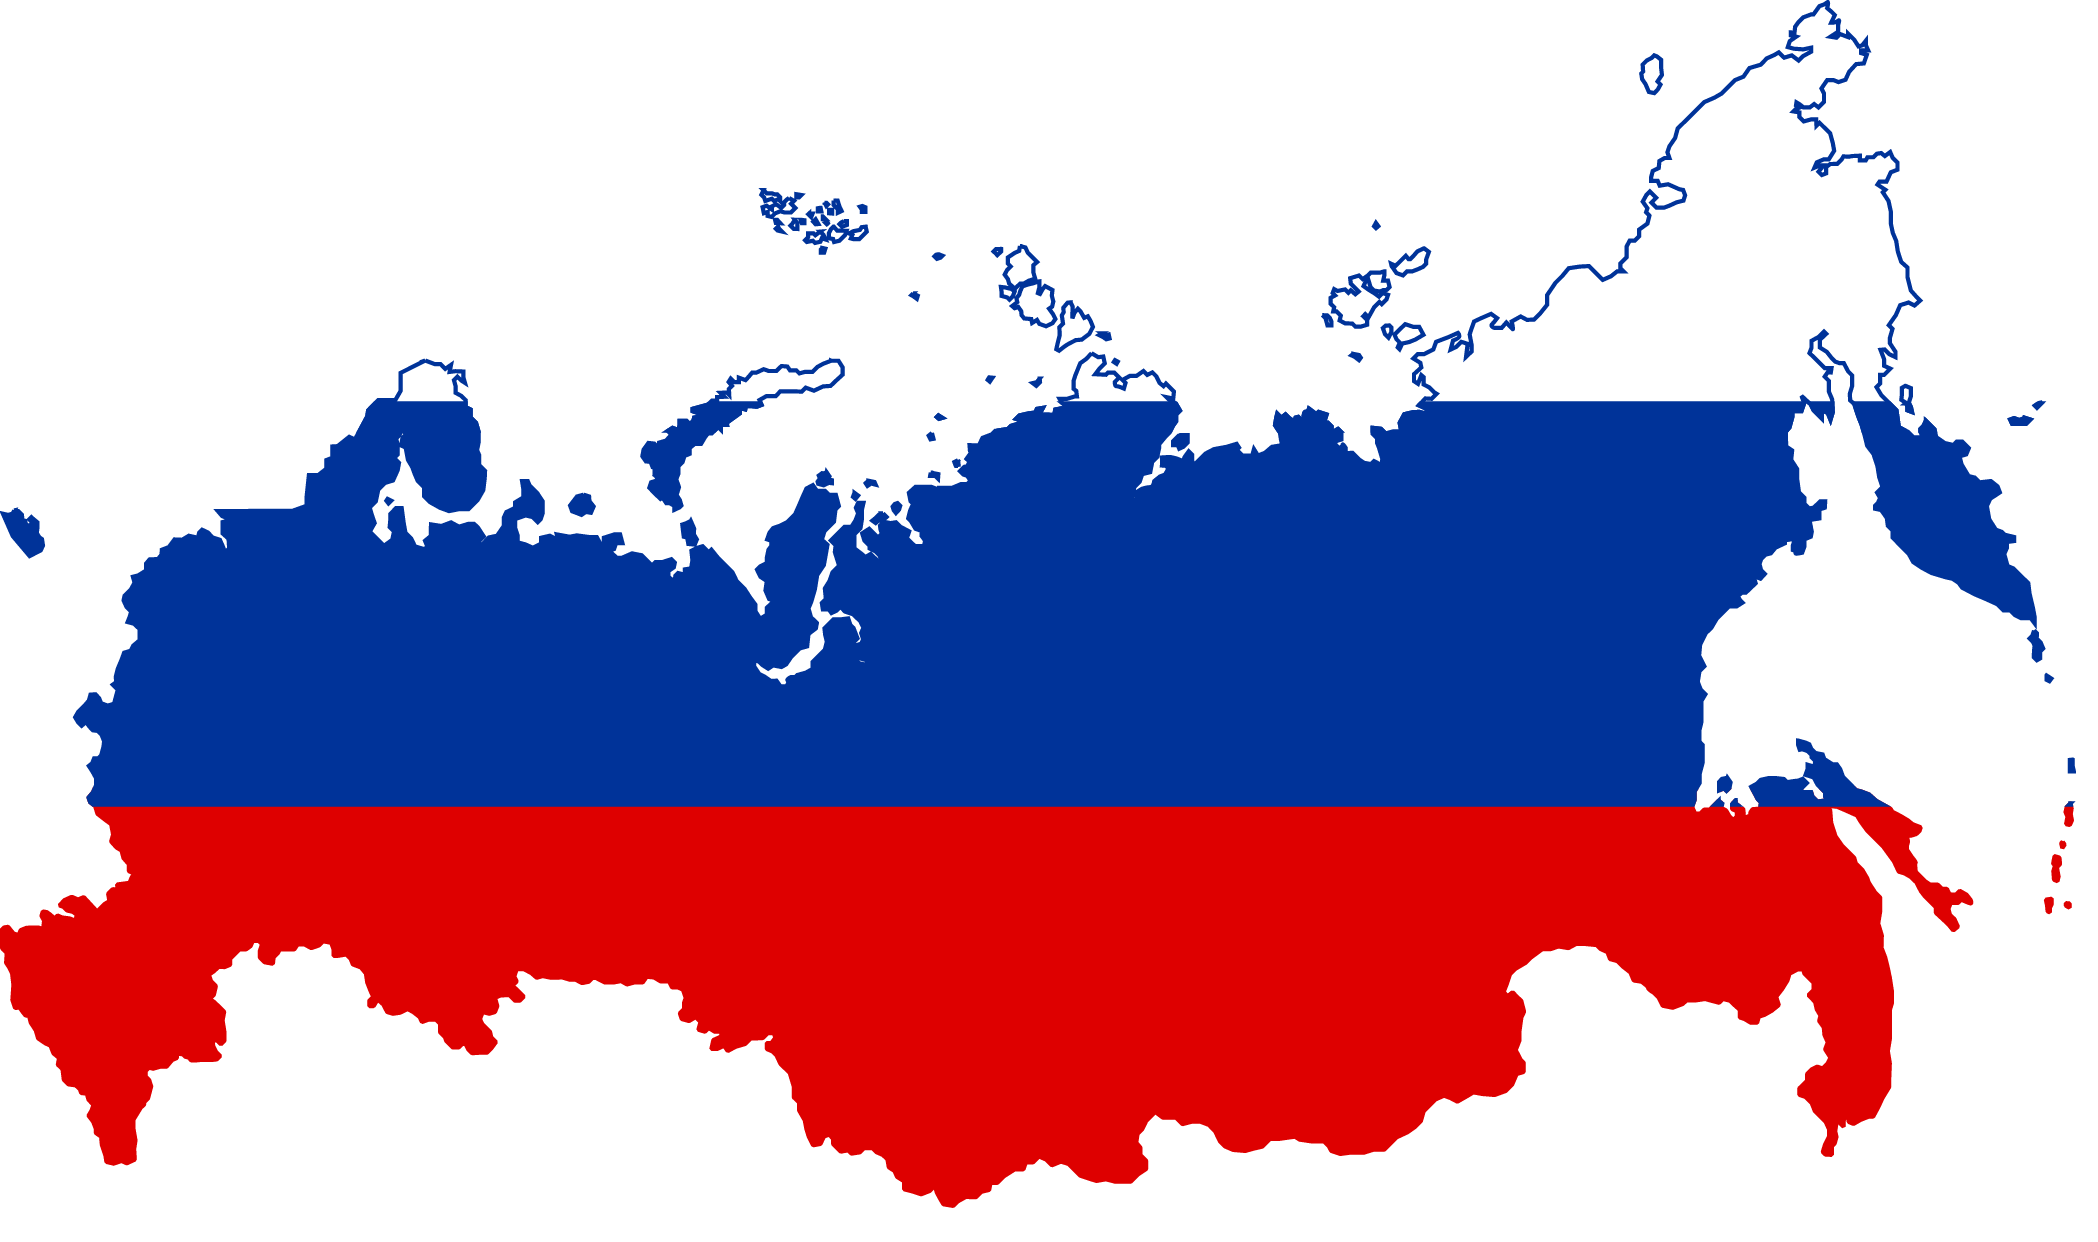 Map of Russia with Russian flag colors superimposed